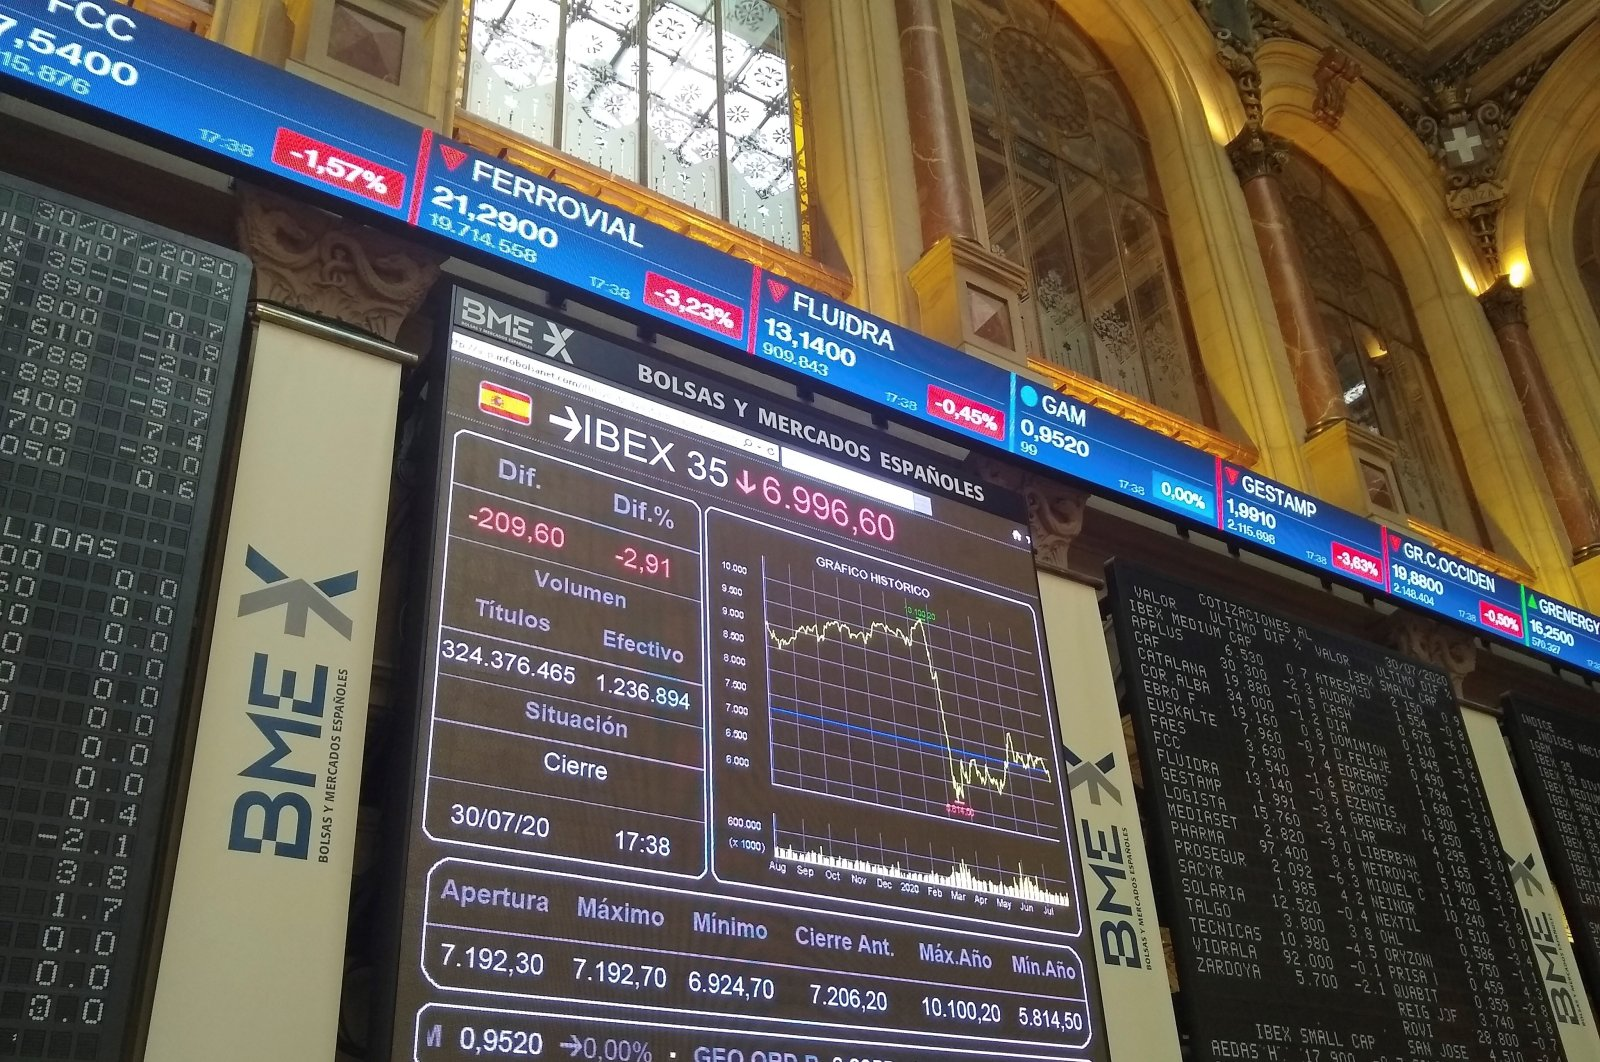 Screens show stock information at the close of the session on the Madrid Stock Exchange, in Madrid, Spain, July 30, 2020. (EPA Photo)